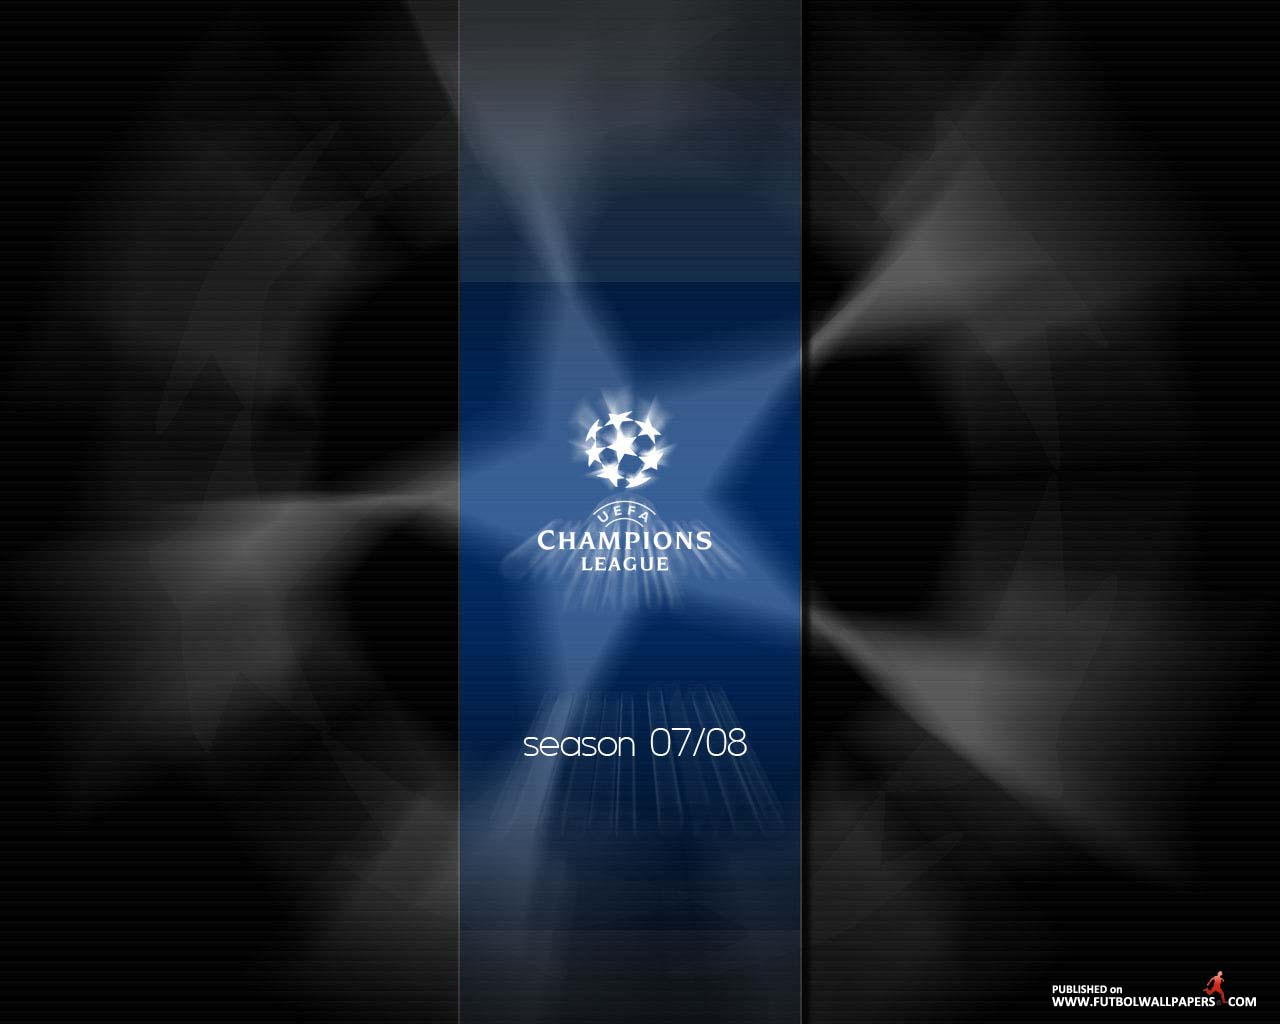 photograf uefa champions league wallpaper 1280x1024